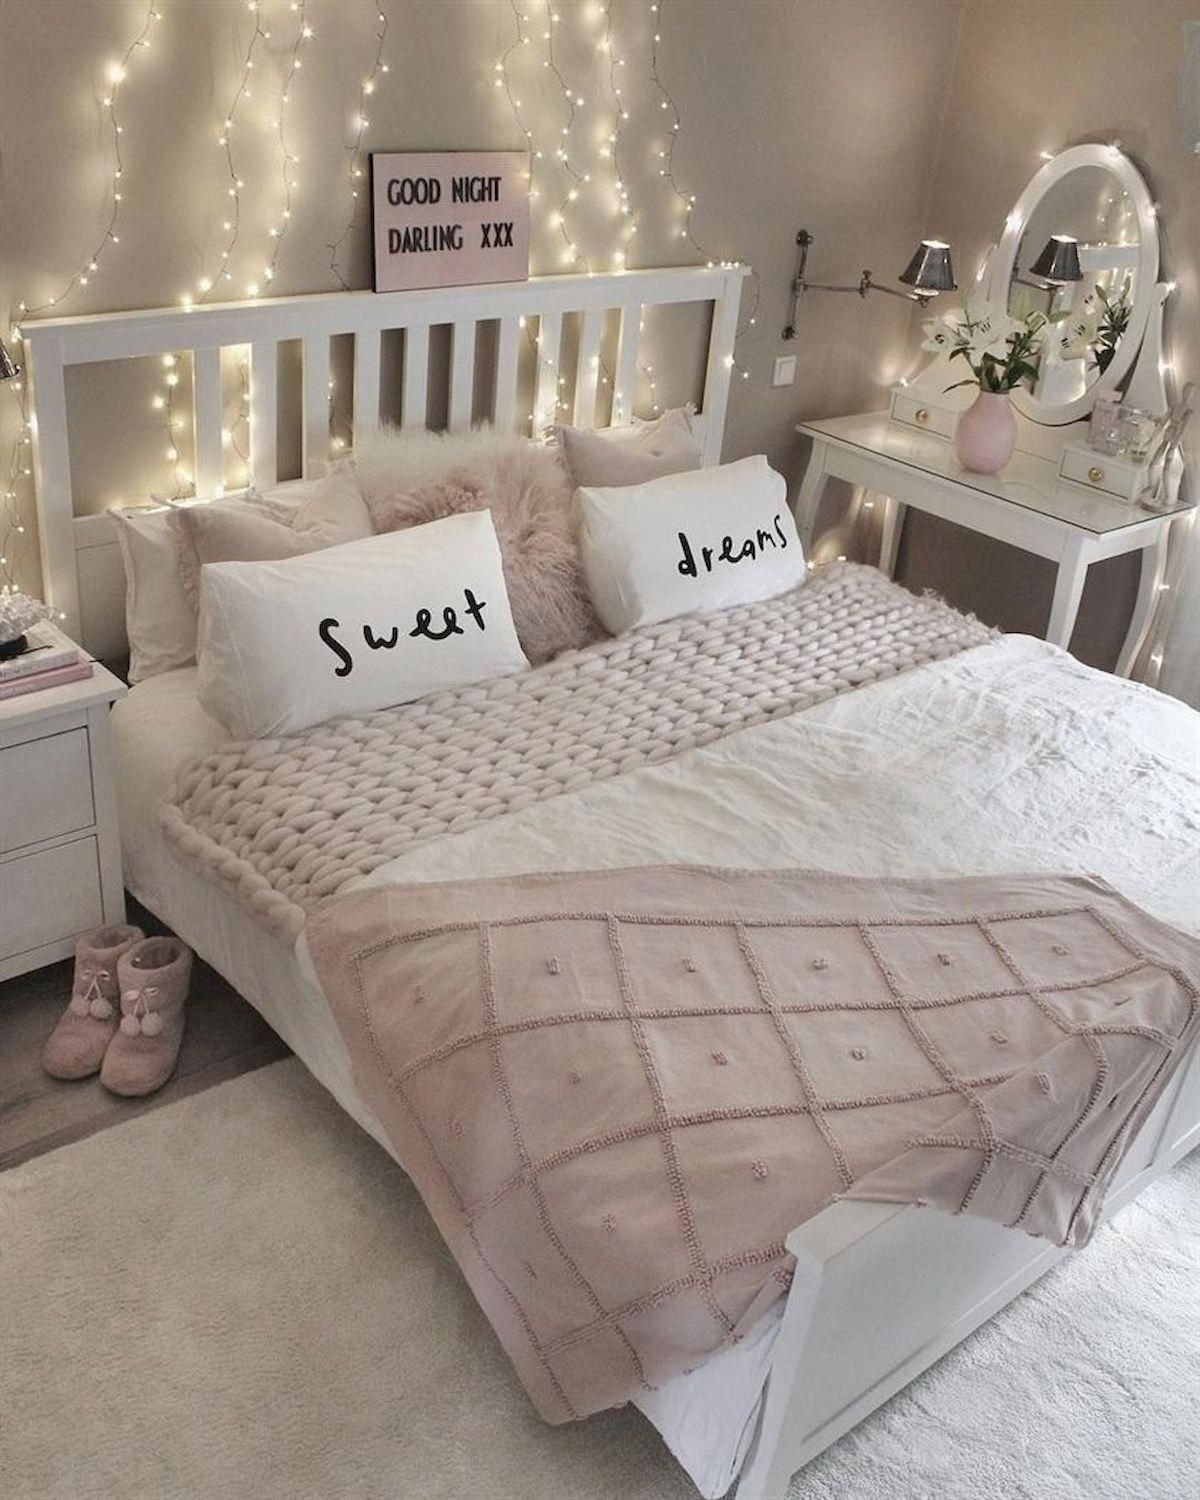 Double Bed Design For Small Room Smallroomdesign Girl Room Girl Bedroom Decor Bedroom Themes